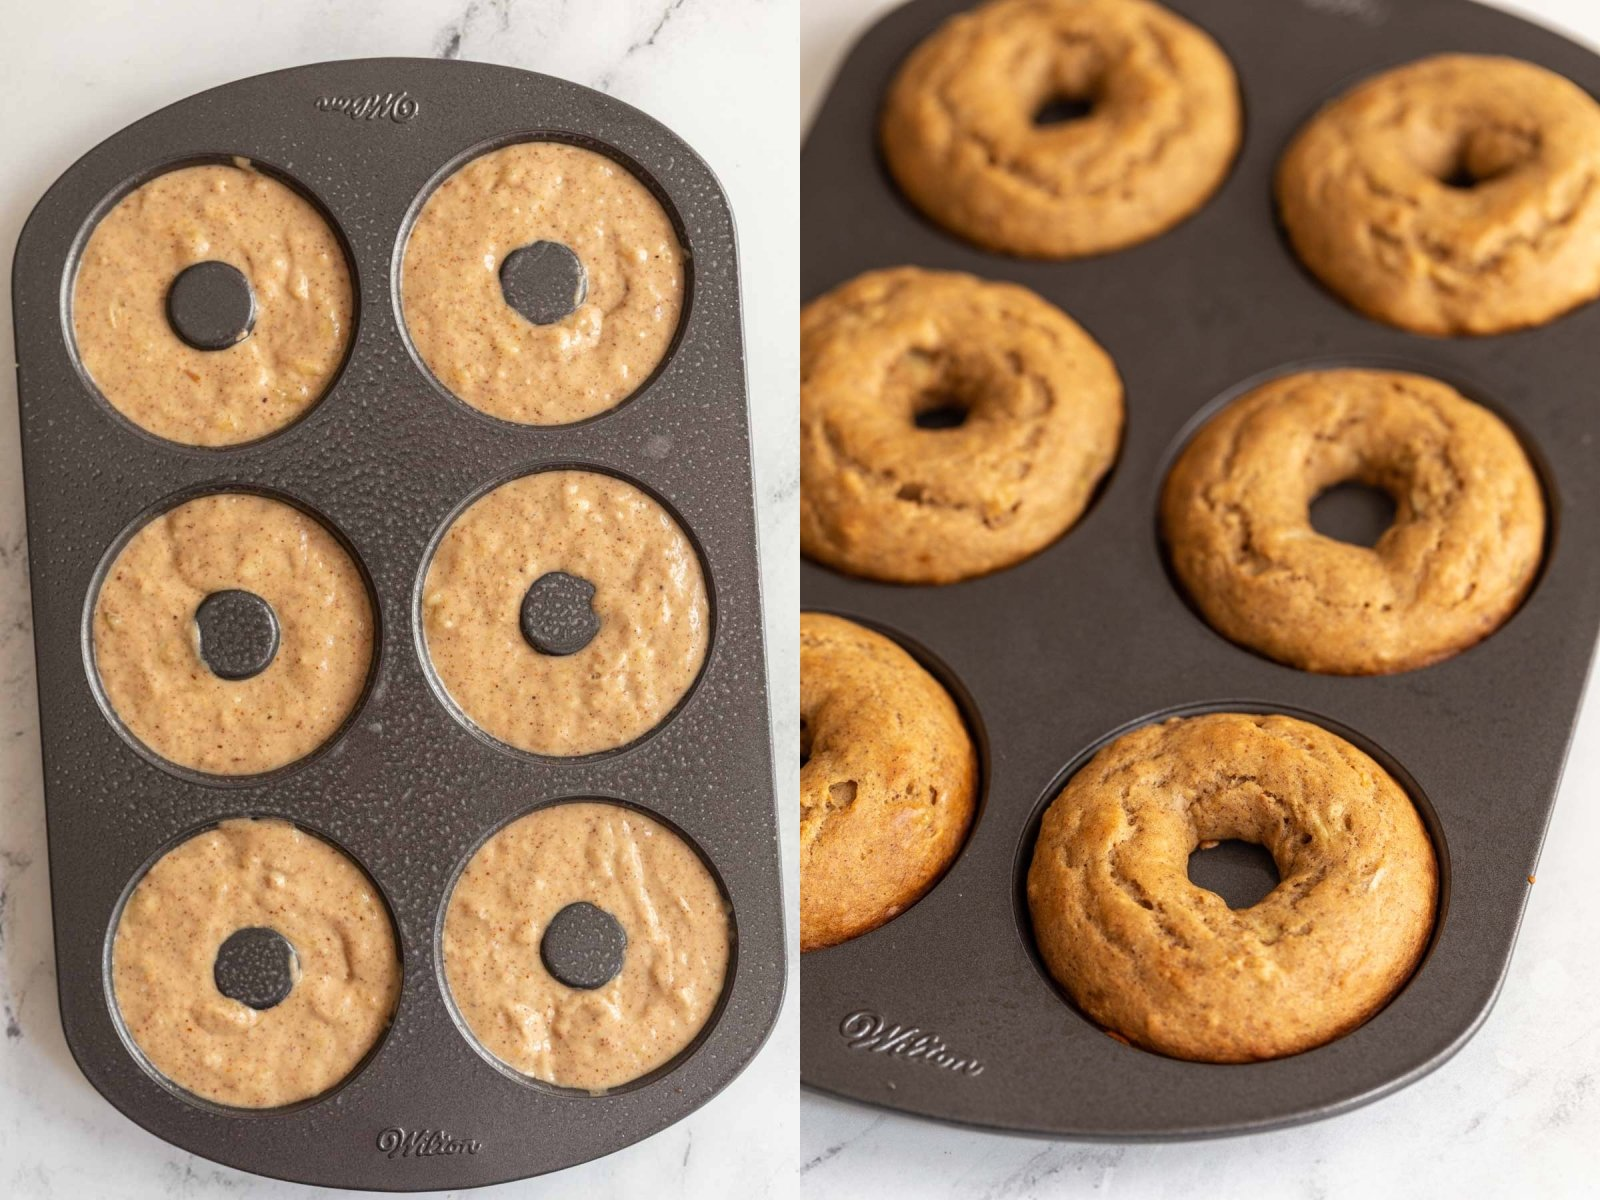 collage image with 2 pictures. Left: donut batter in a 6 cavity donut pan. Right image: the same donuts from a side angle after they have been baked